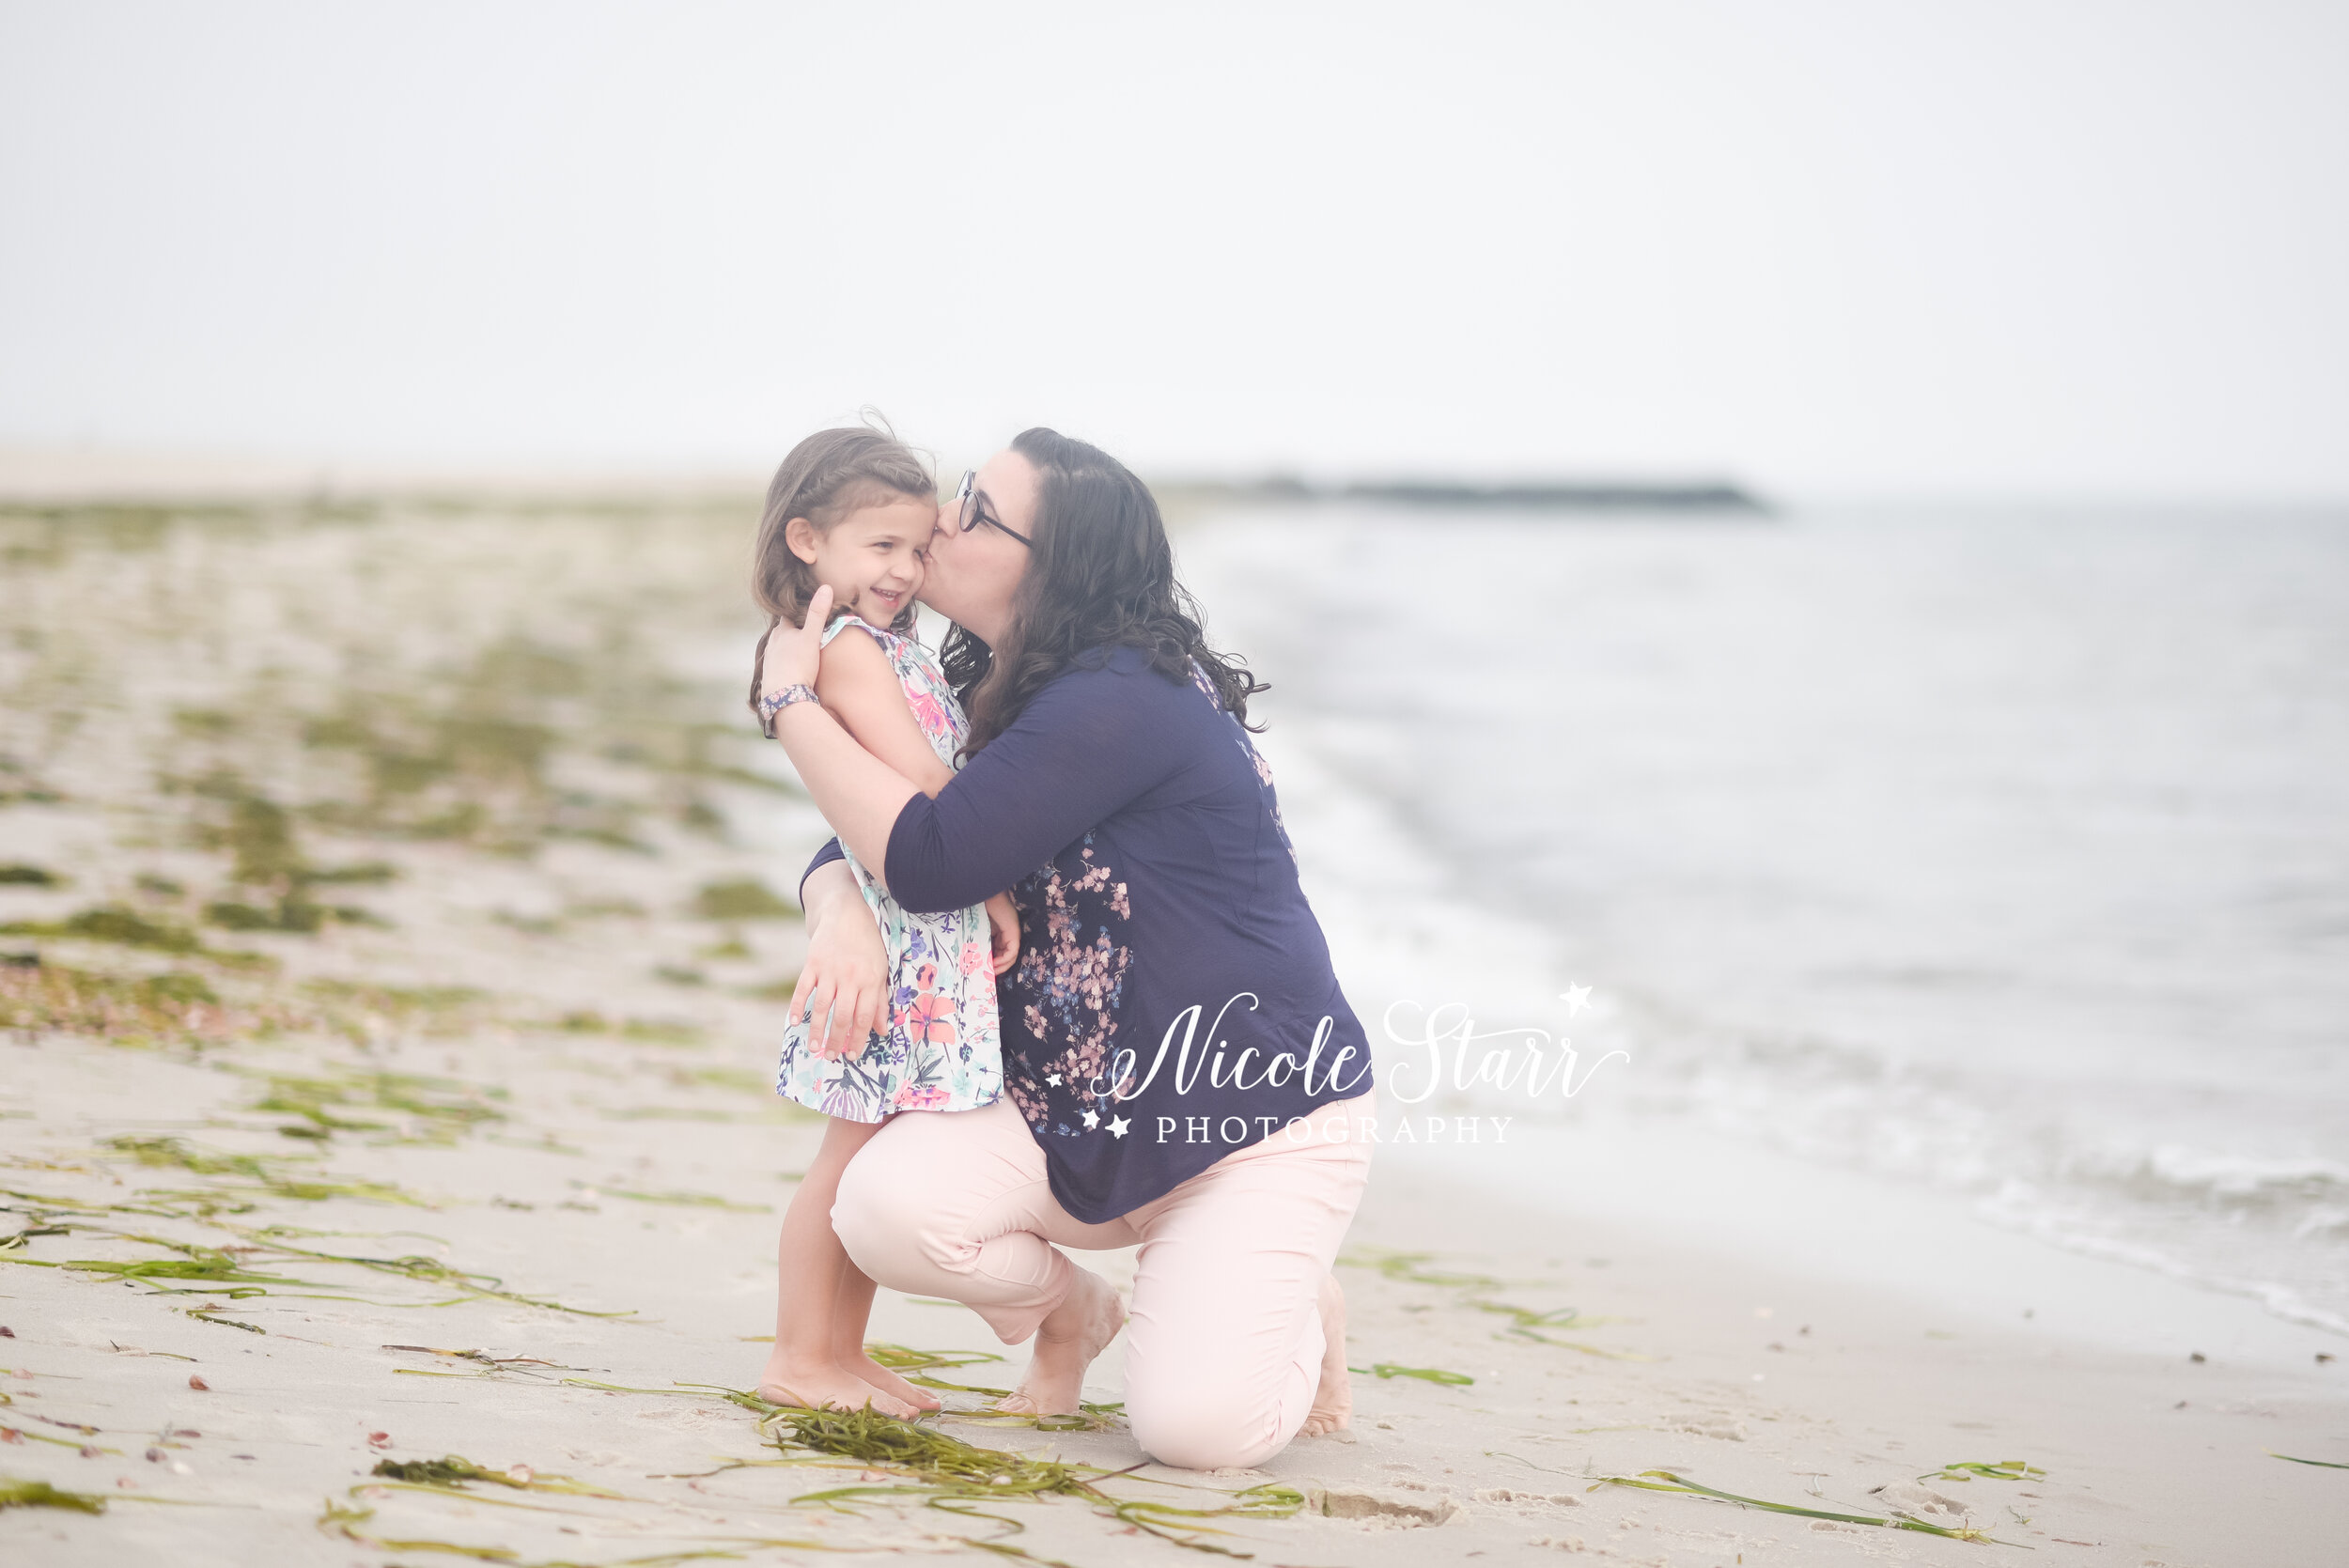 Nicole Starr Photography | Cape Cod Family Photographer | Boston Family Photographer | Family Photographer | Beach Family Photographer | Massachusetts Family Photographer | Extended family portraits, beach family portraits, Cape Cod portraits, Cape Cod family session, Large family photos on the beach